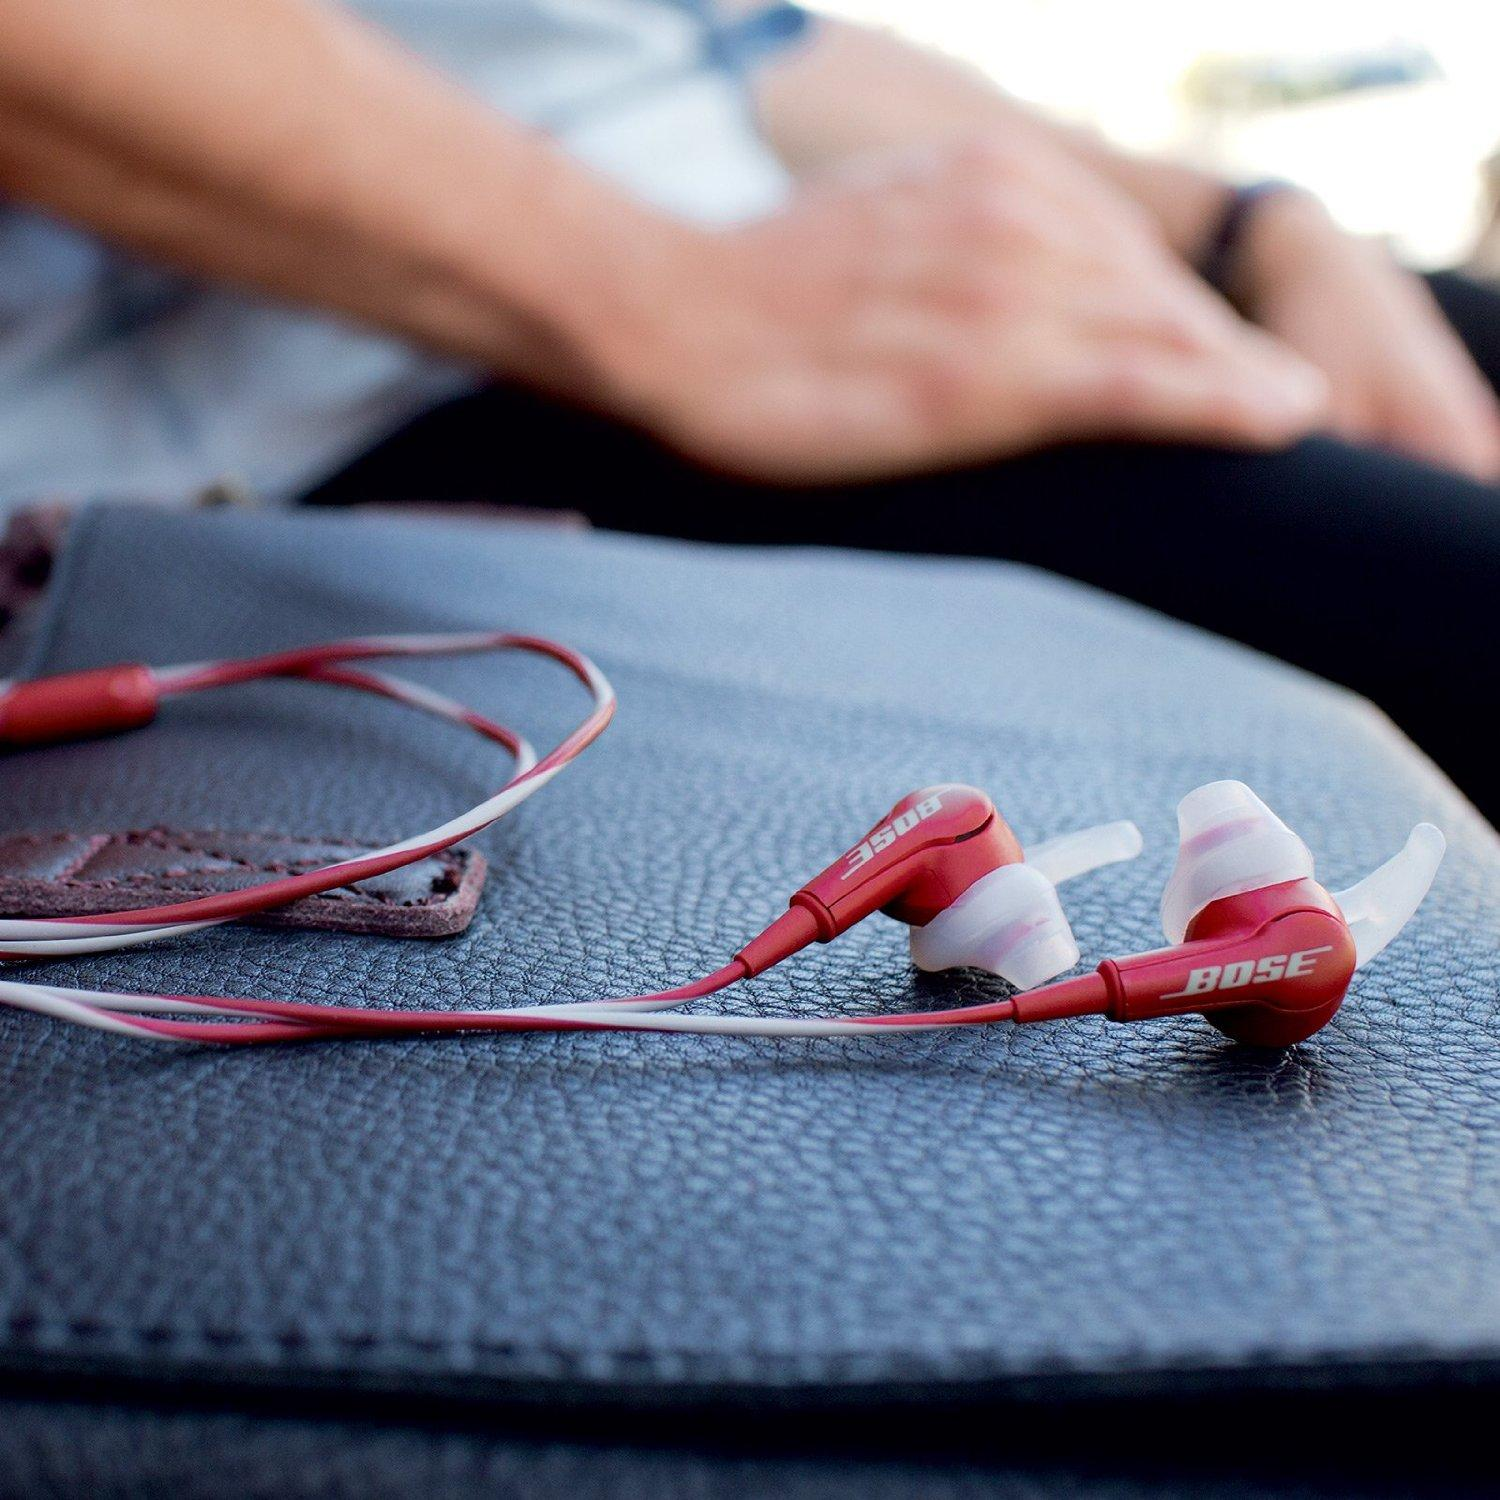 Bose SoundTrue In-Ear Headphones for iOS Models